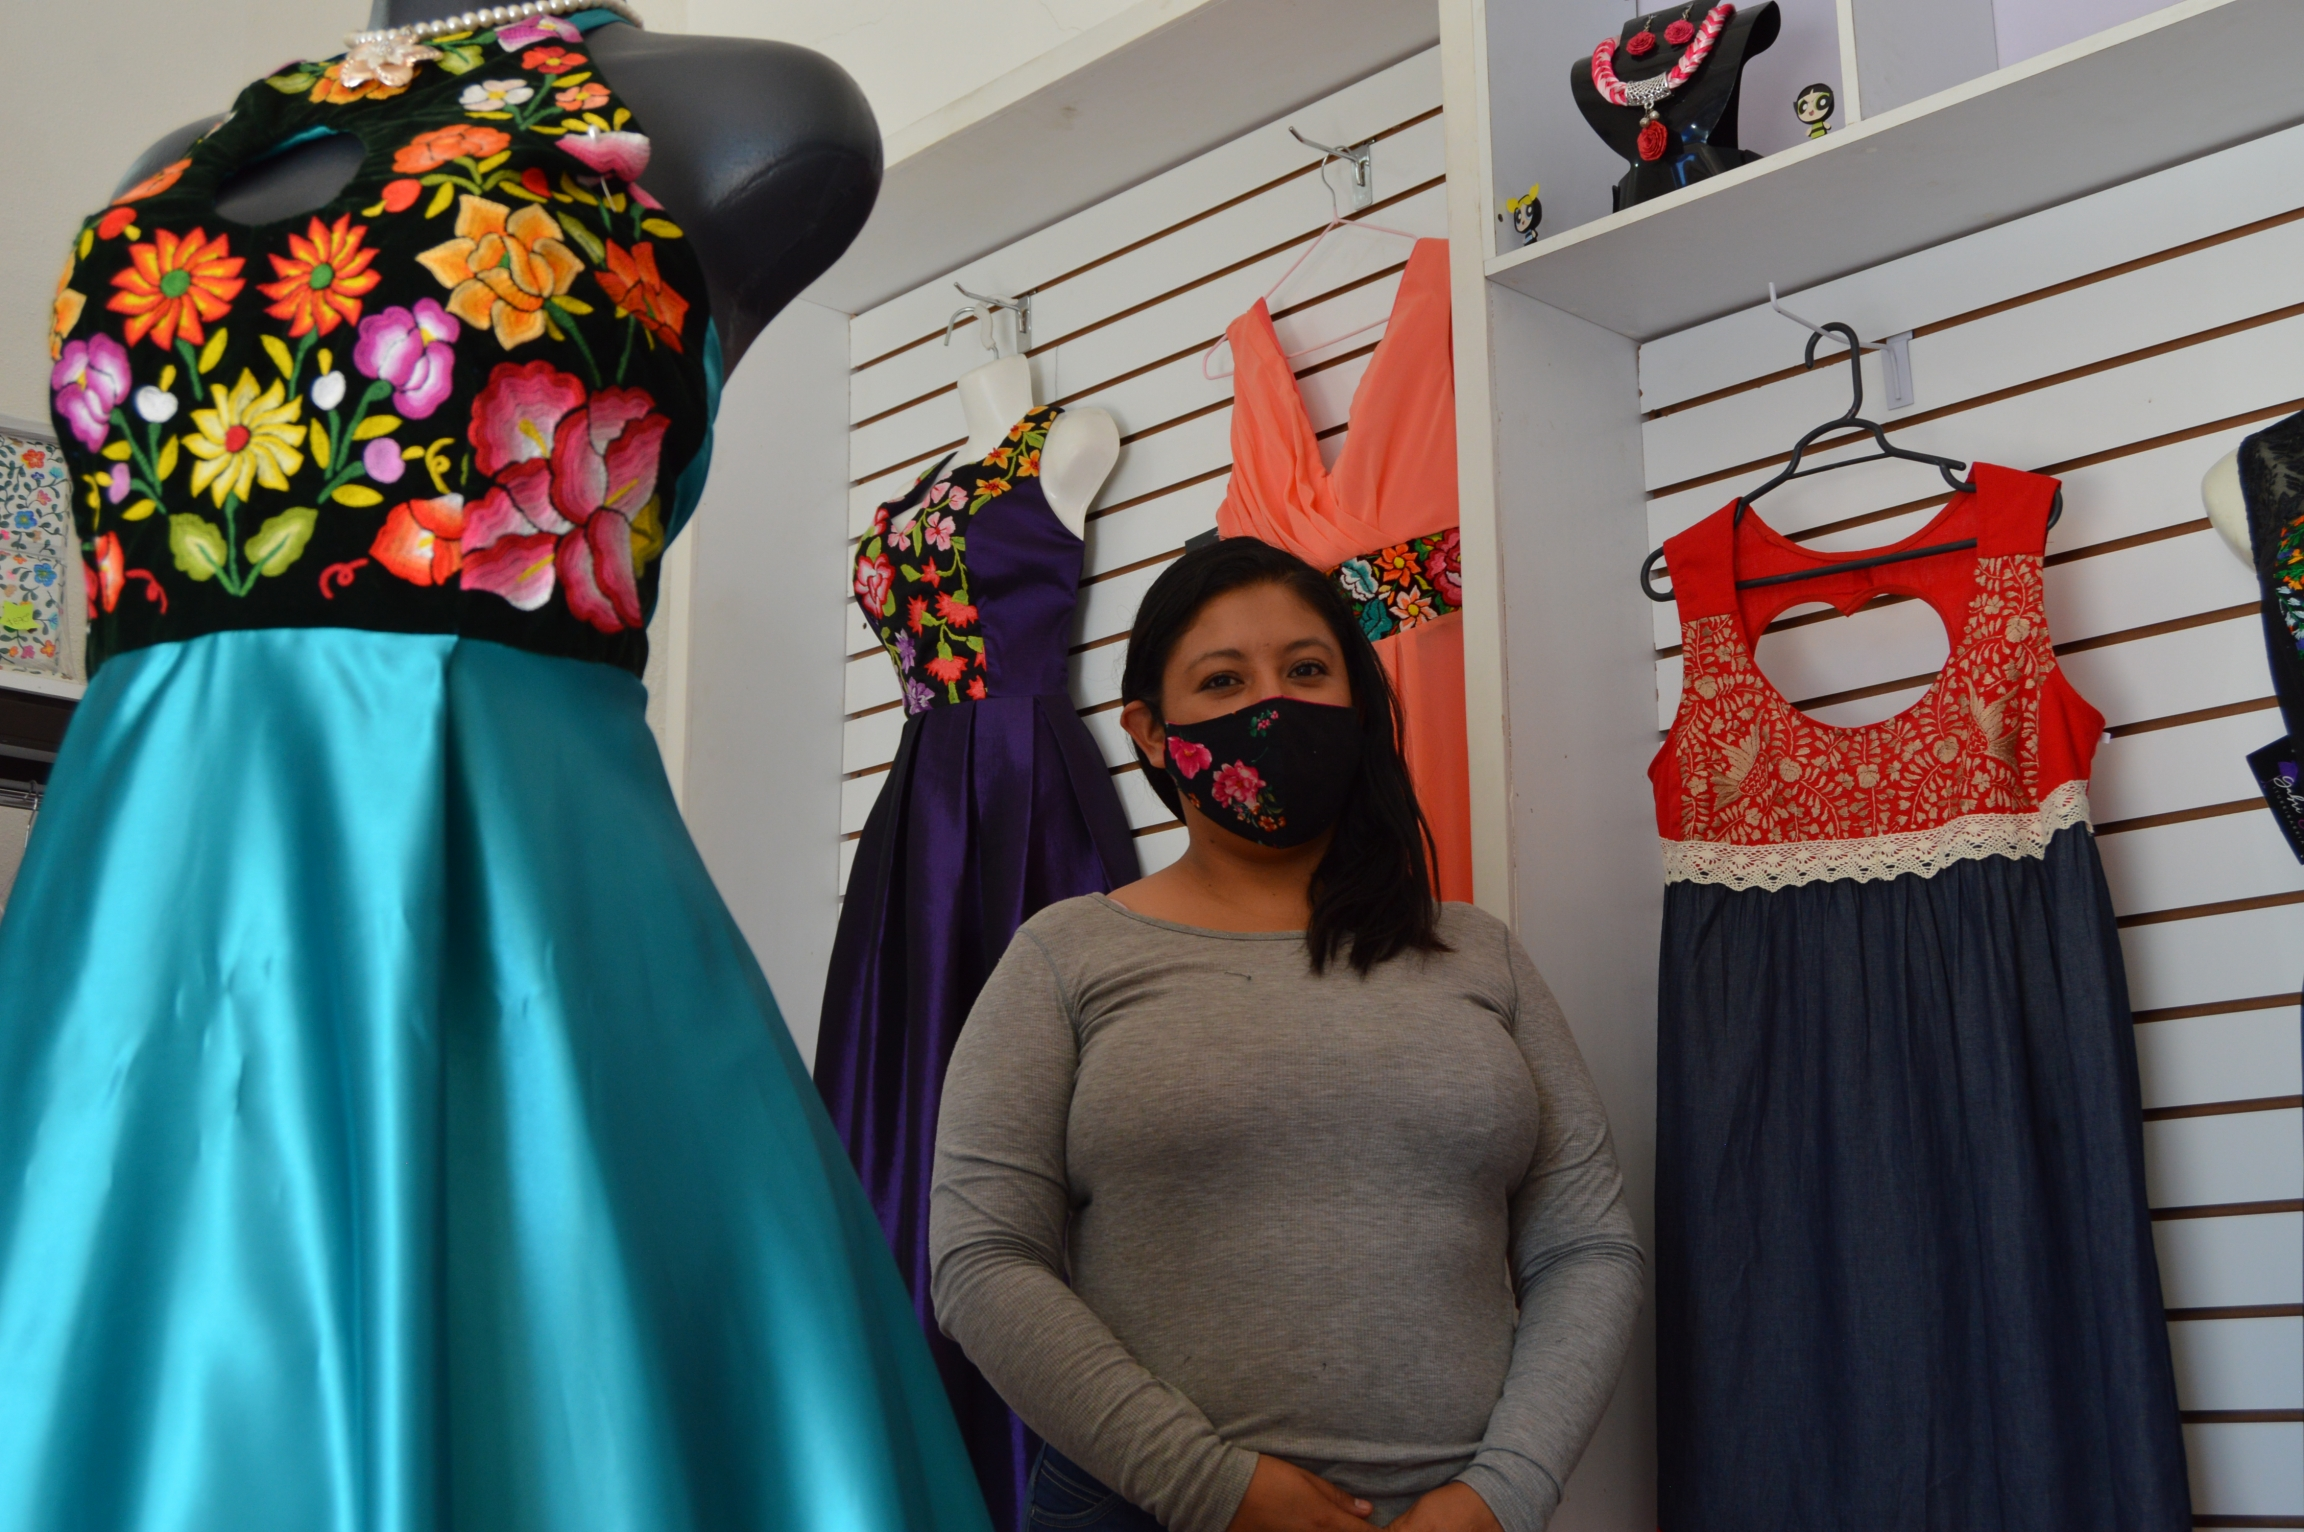 Face masks aren't as profitable as other goods, but they're a stop-gap measure helping textile workersin Mexico stay in business during COVID-19.